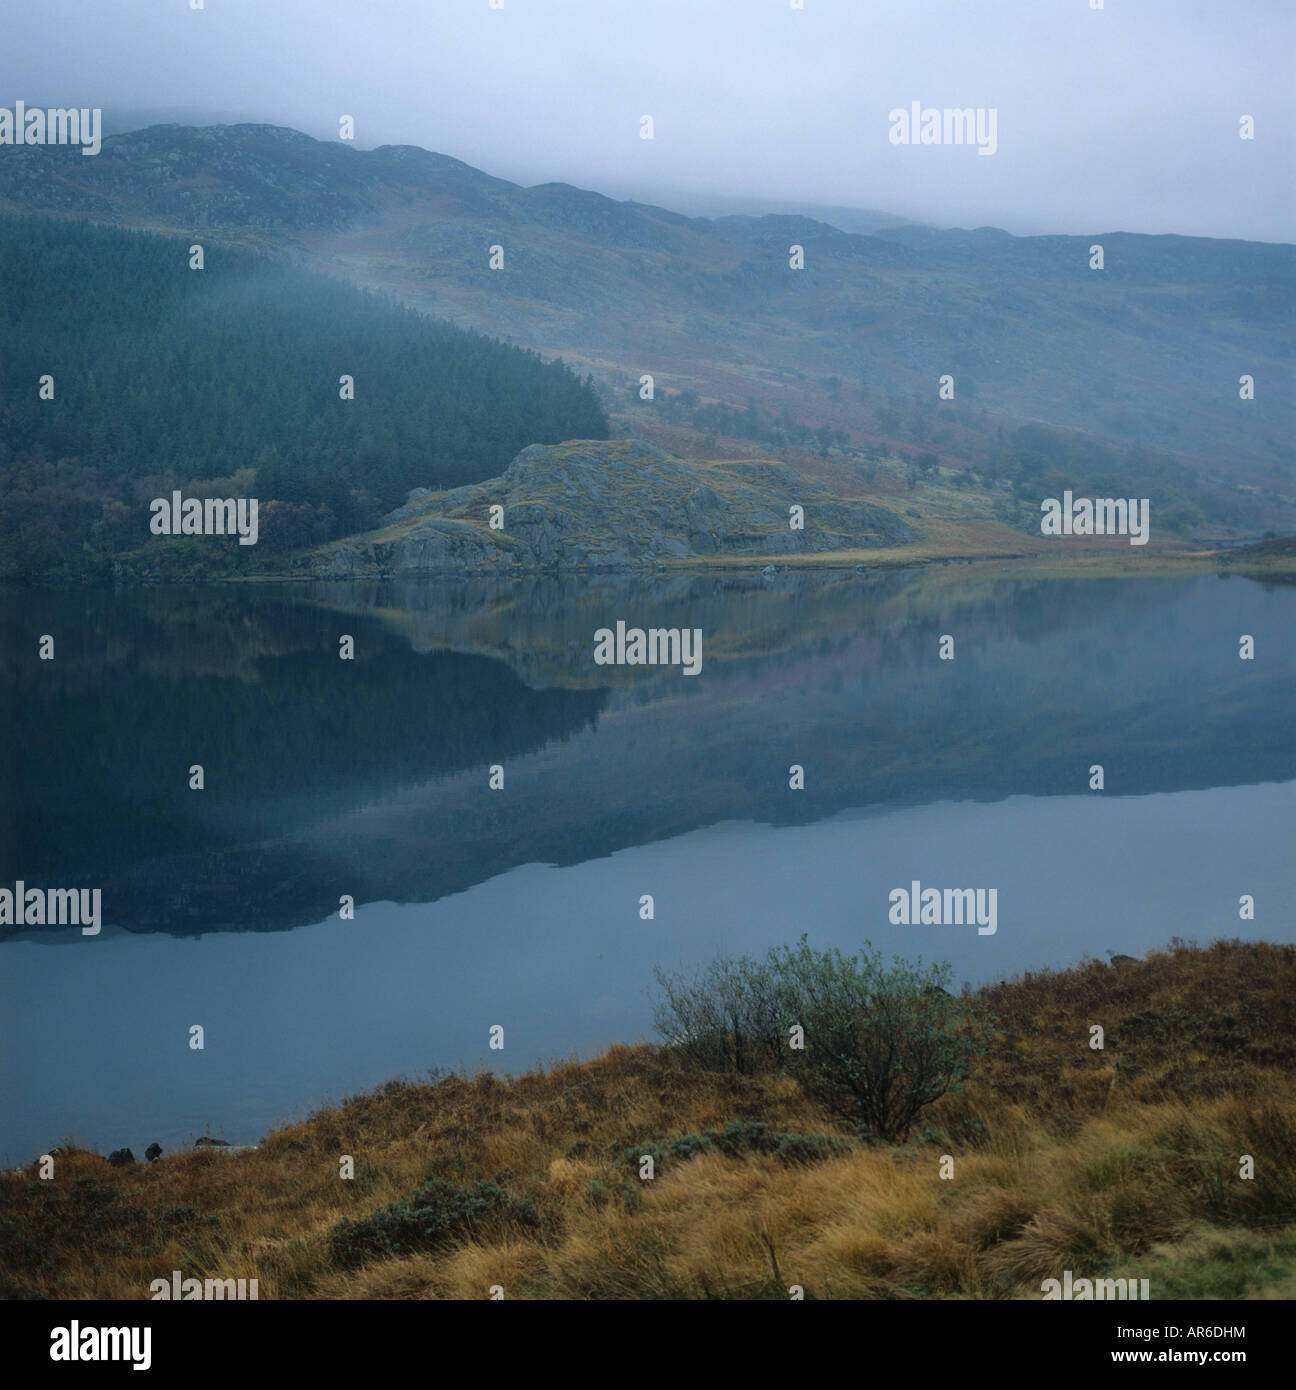 Misty dull day with reflections in a still mountain lake in Snowdonia Wales - Stock Image